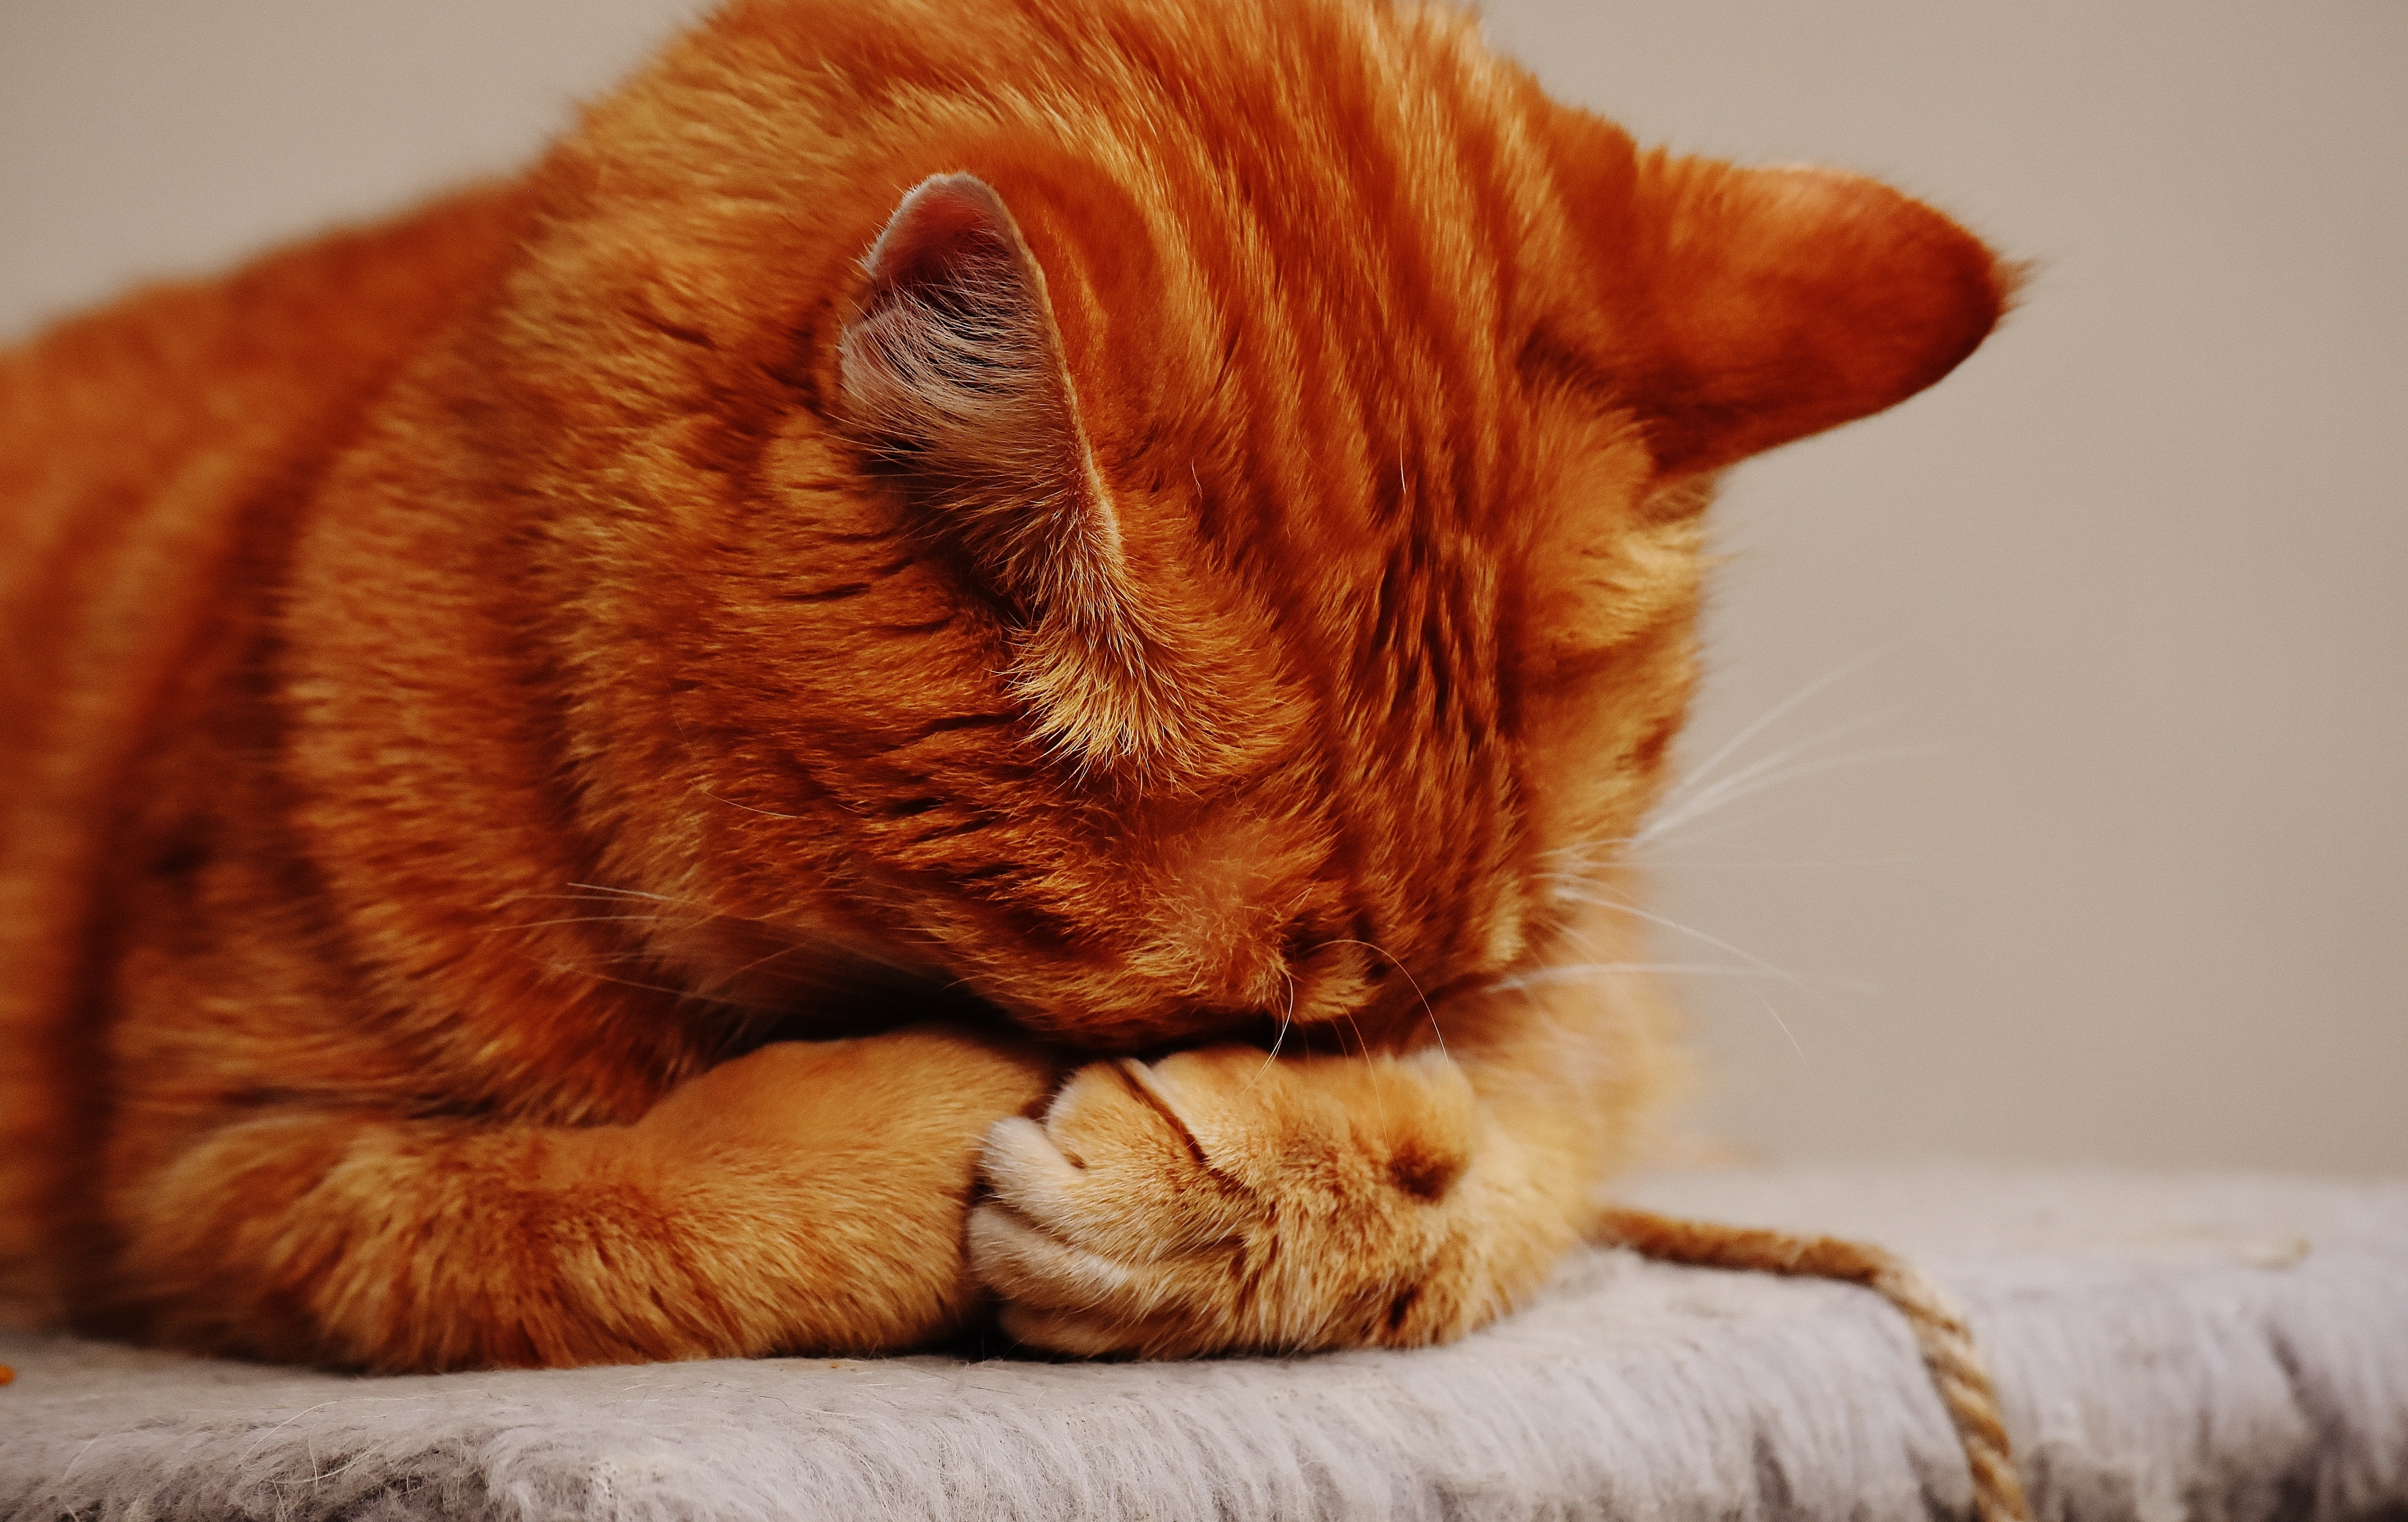 Ginger cat asleep. | Source: Pexels